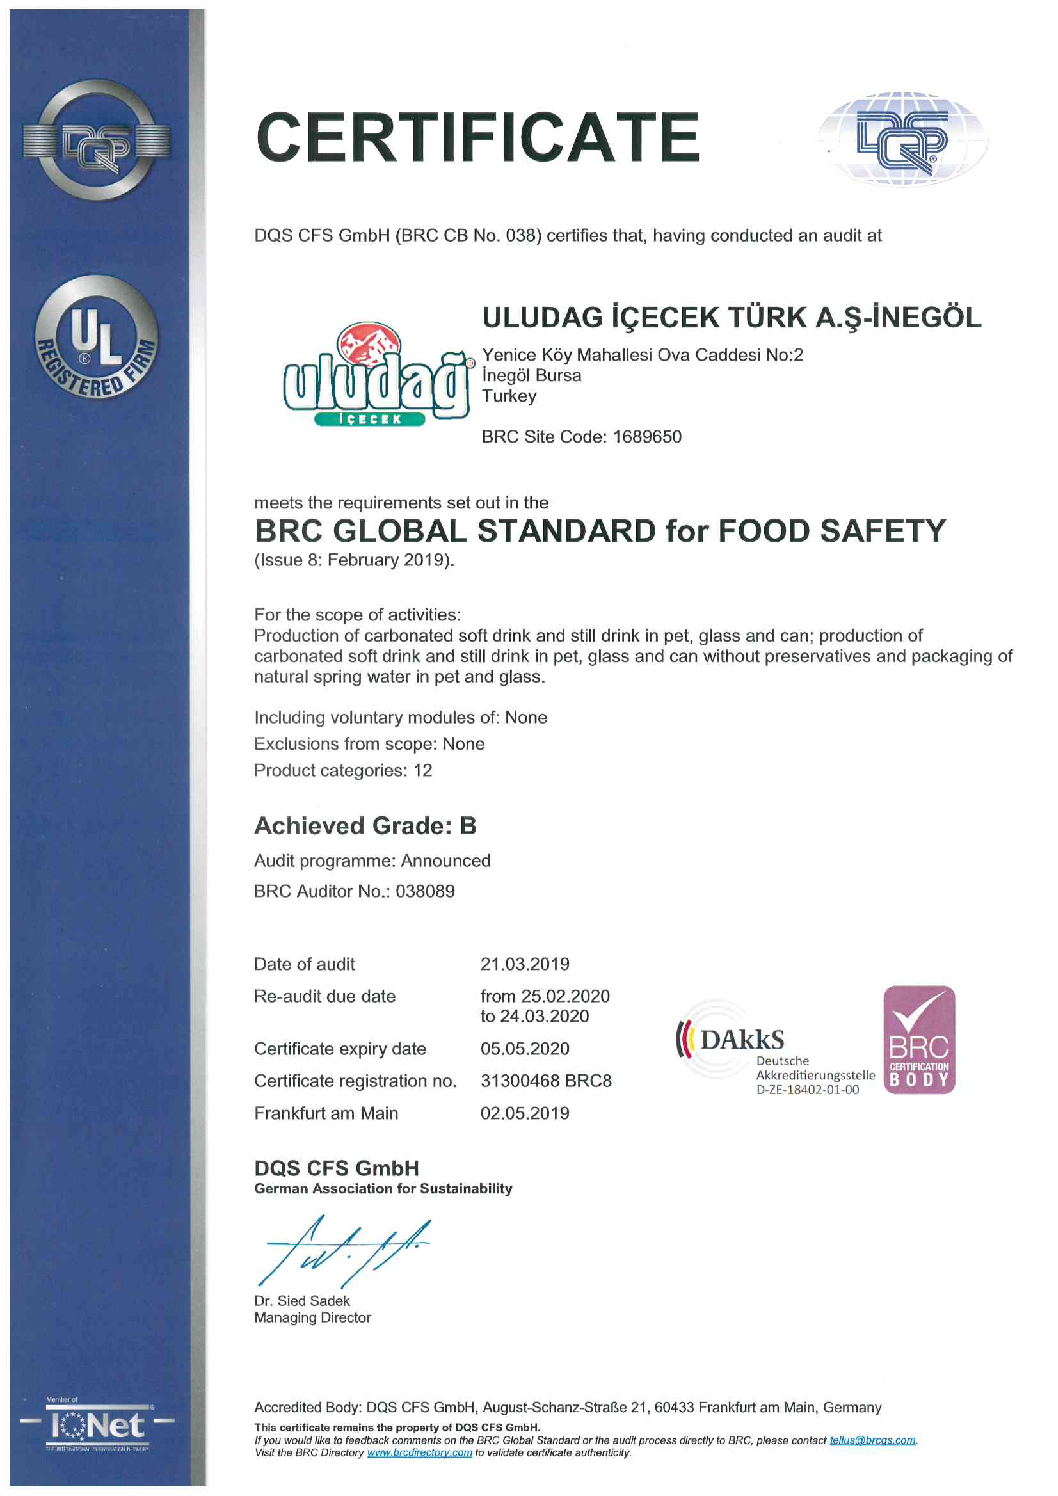 CERTIFICAT-BRC GLOBAL STANDARD FOR FOOD SAFETY